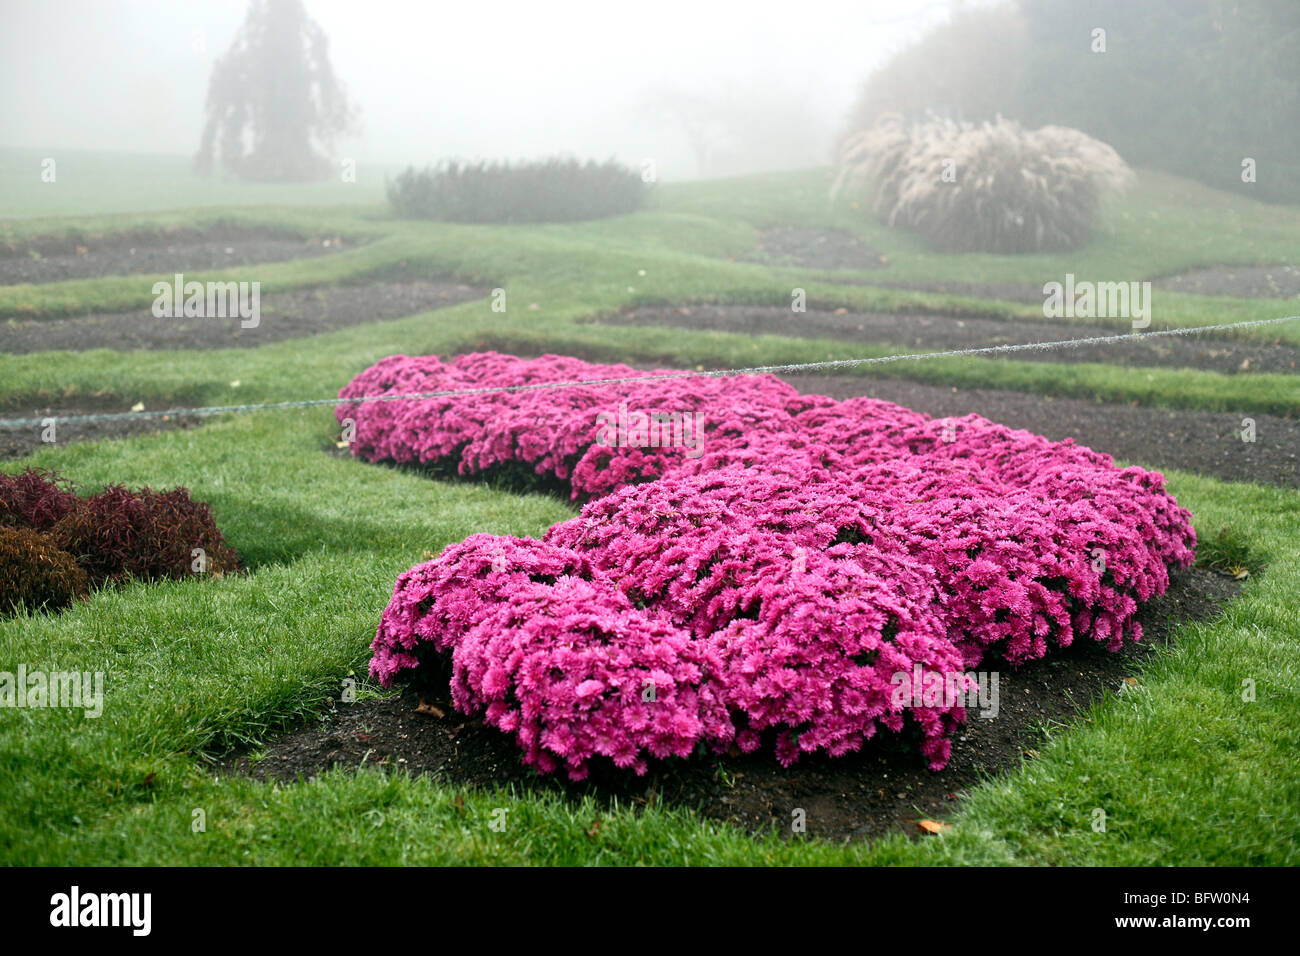 bed of magenta chrysanthemums brilliant against green grass in thick fog at Mohonk Mountain House gardens in upstate - Stock Image